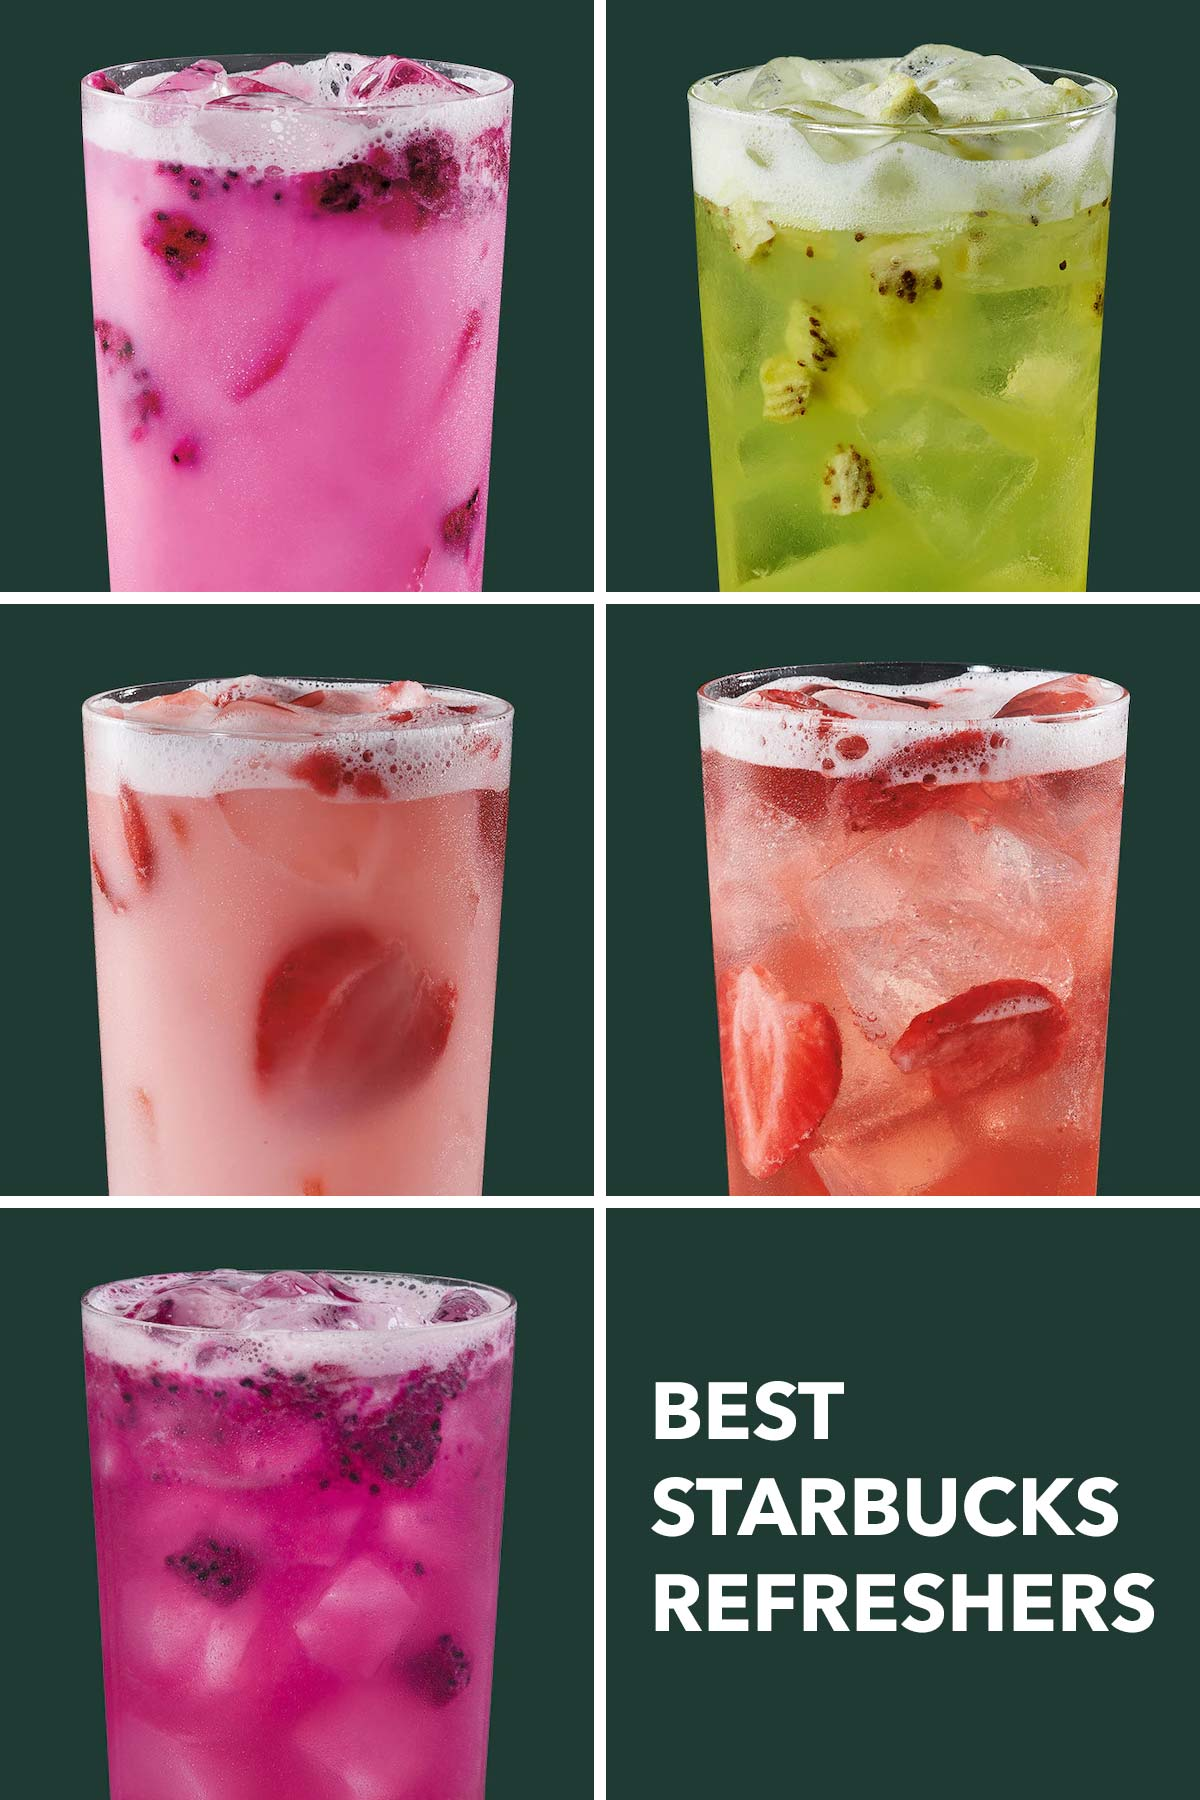 Five photo collage showing different Starbucks Refresher drinks.